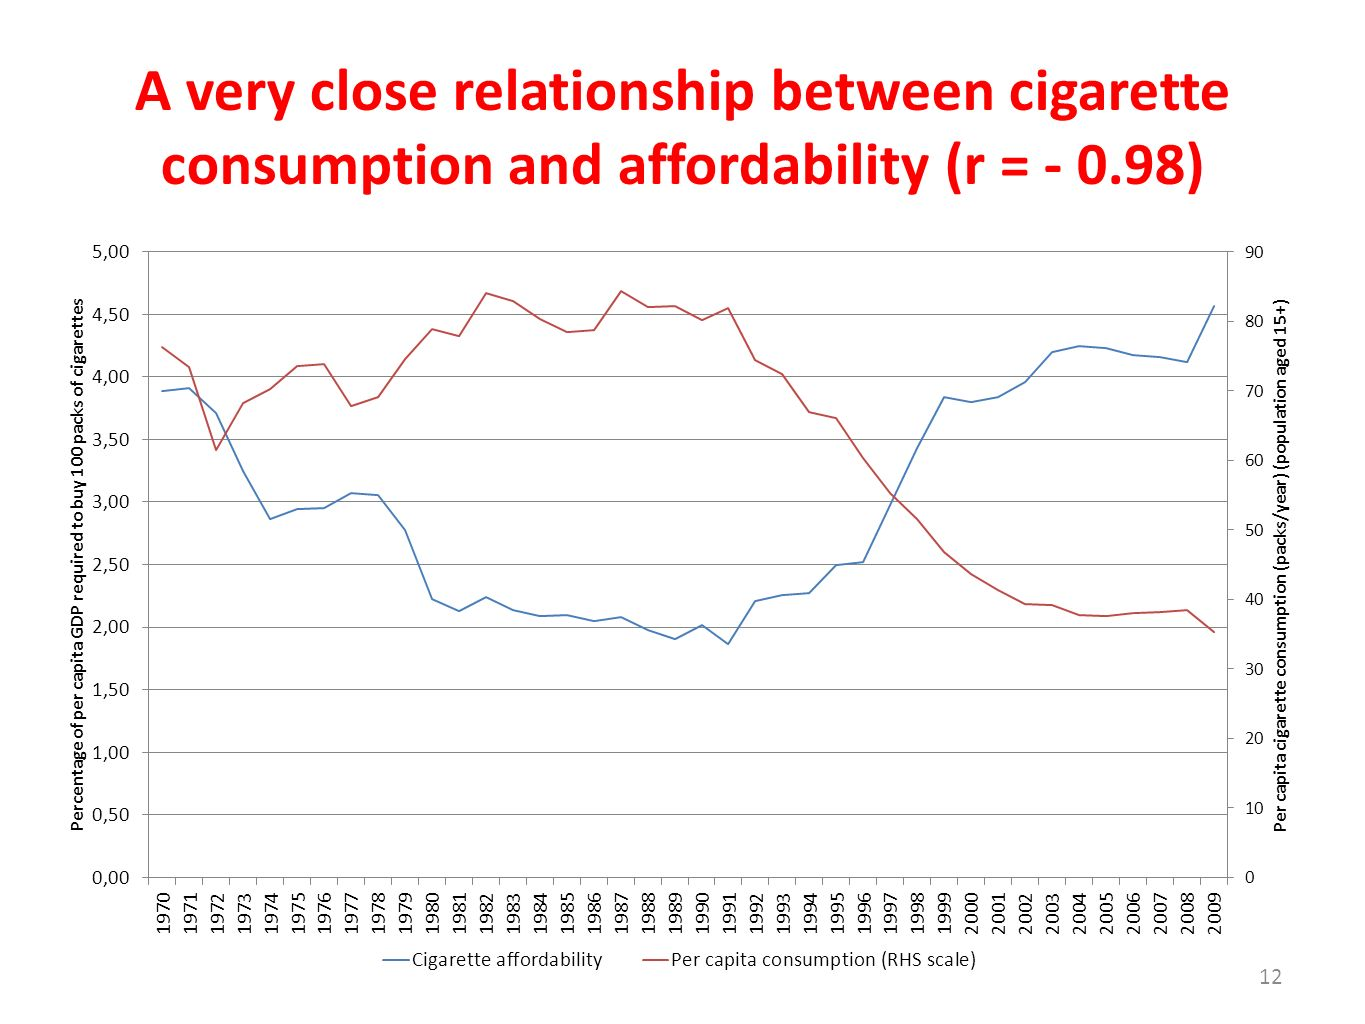 A very close relationship between cigarette consumption and affordability (r = - 0.98)